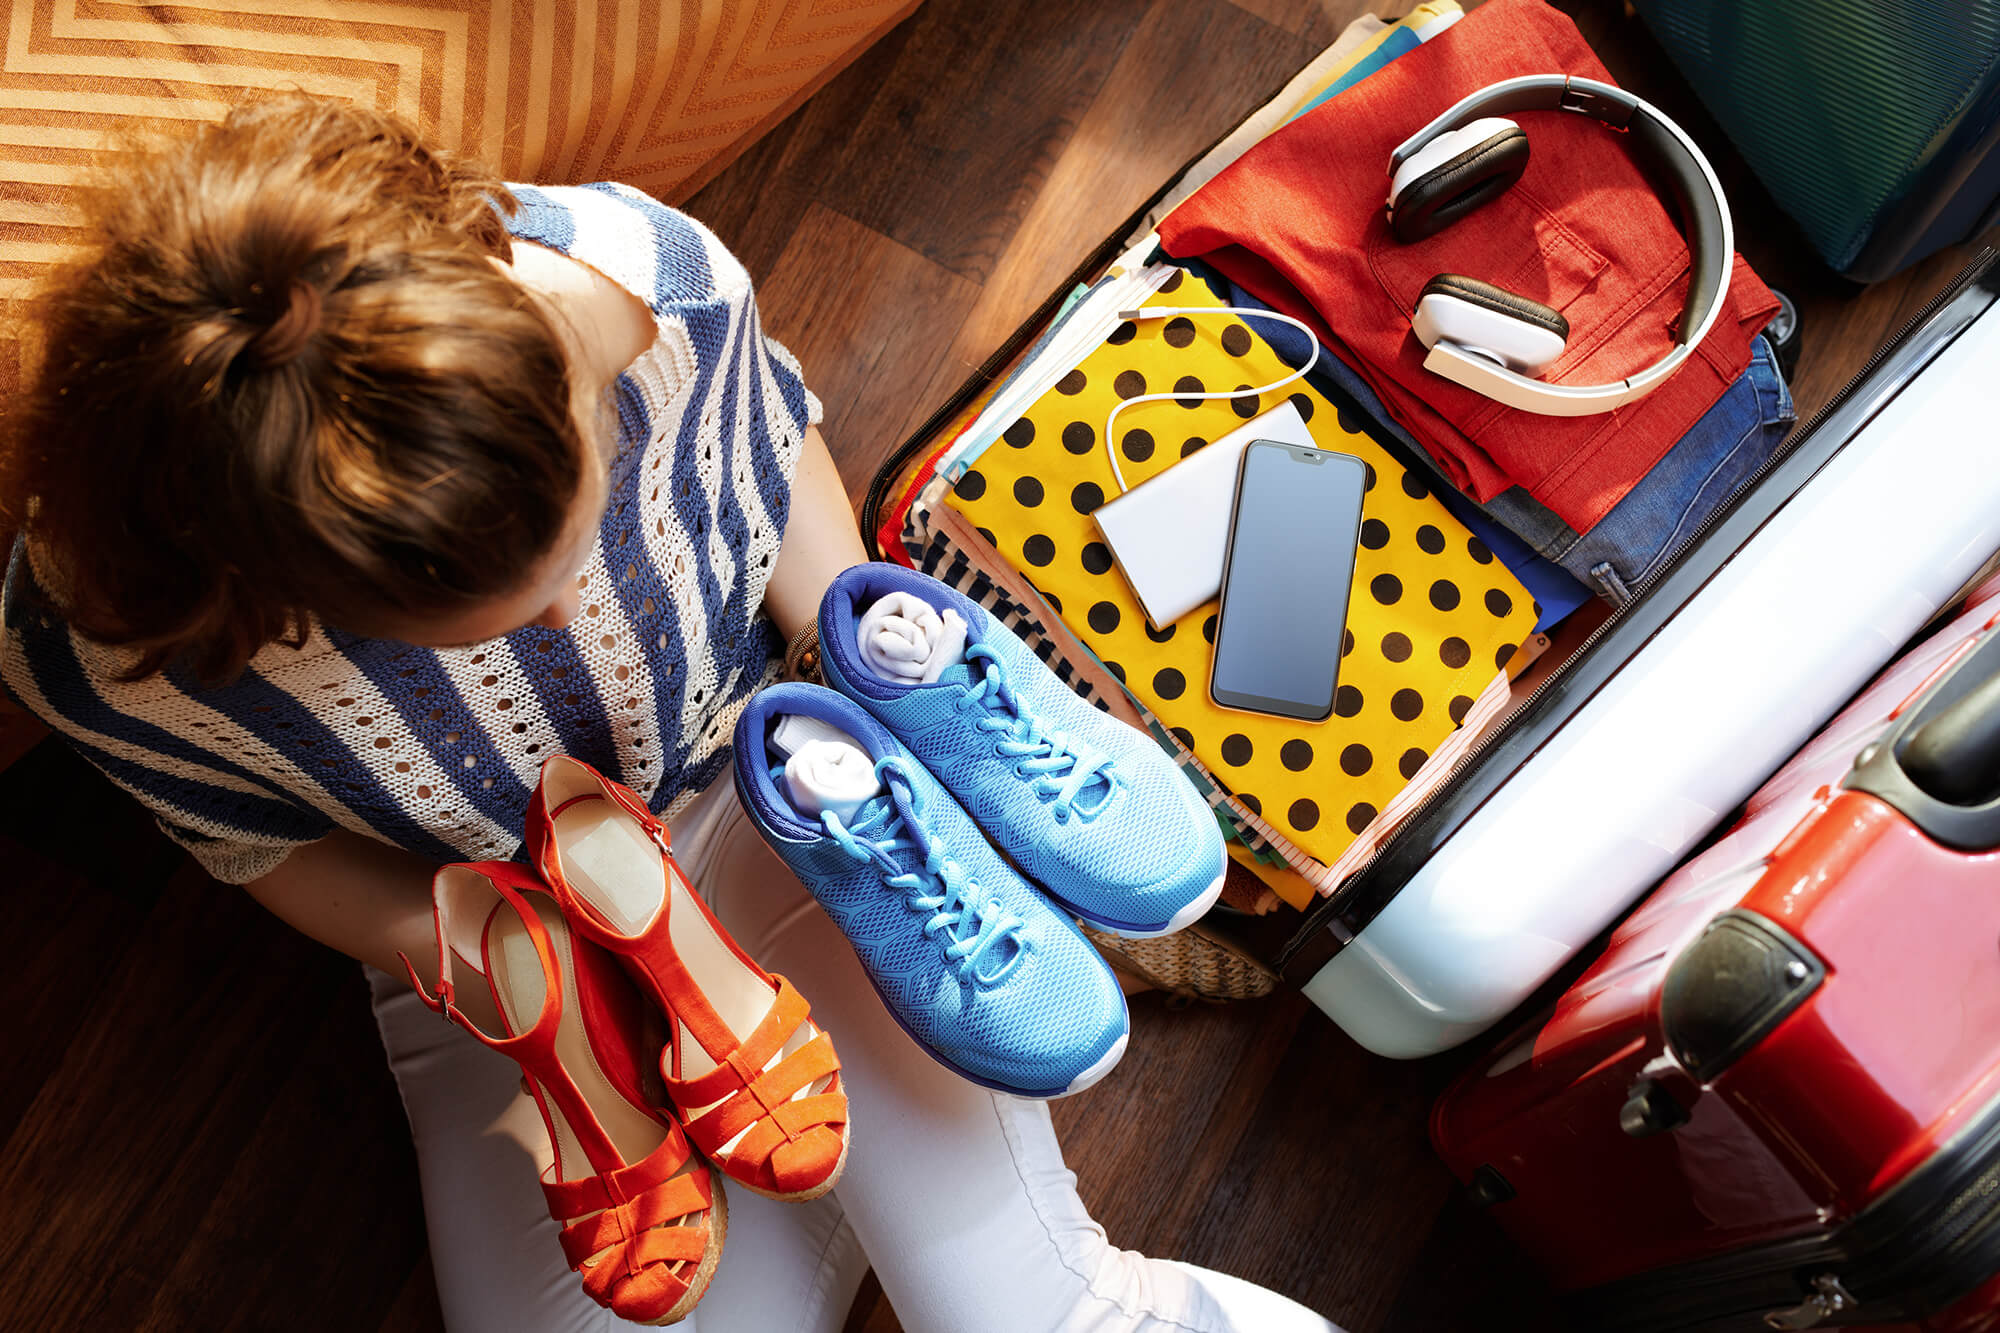 A person holds a pair of trainers in one hand and a pair of orange sandals in another. They are sitting on their bed, next to a suitcase which contains headphones, folders and a mobile phone.